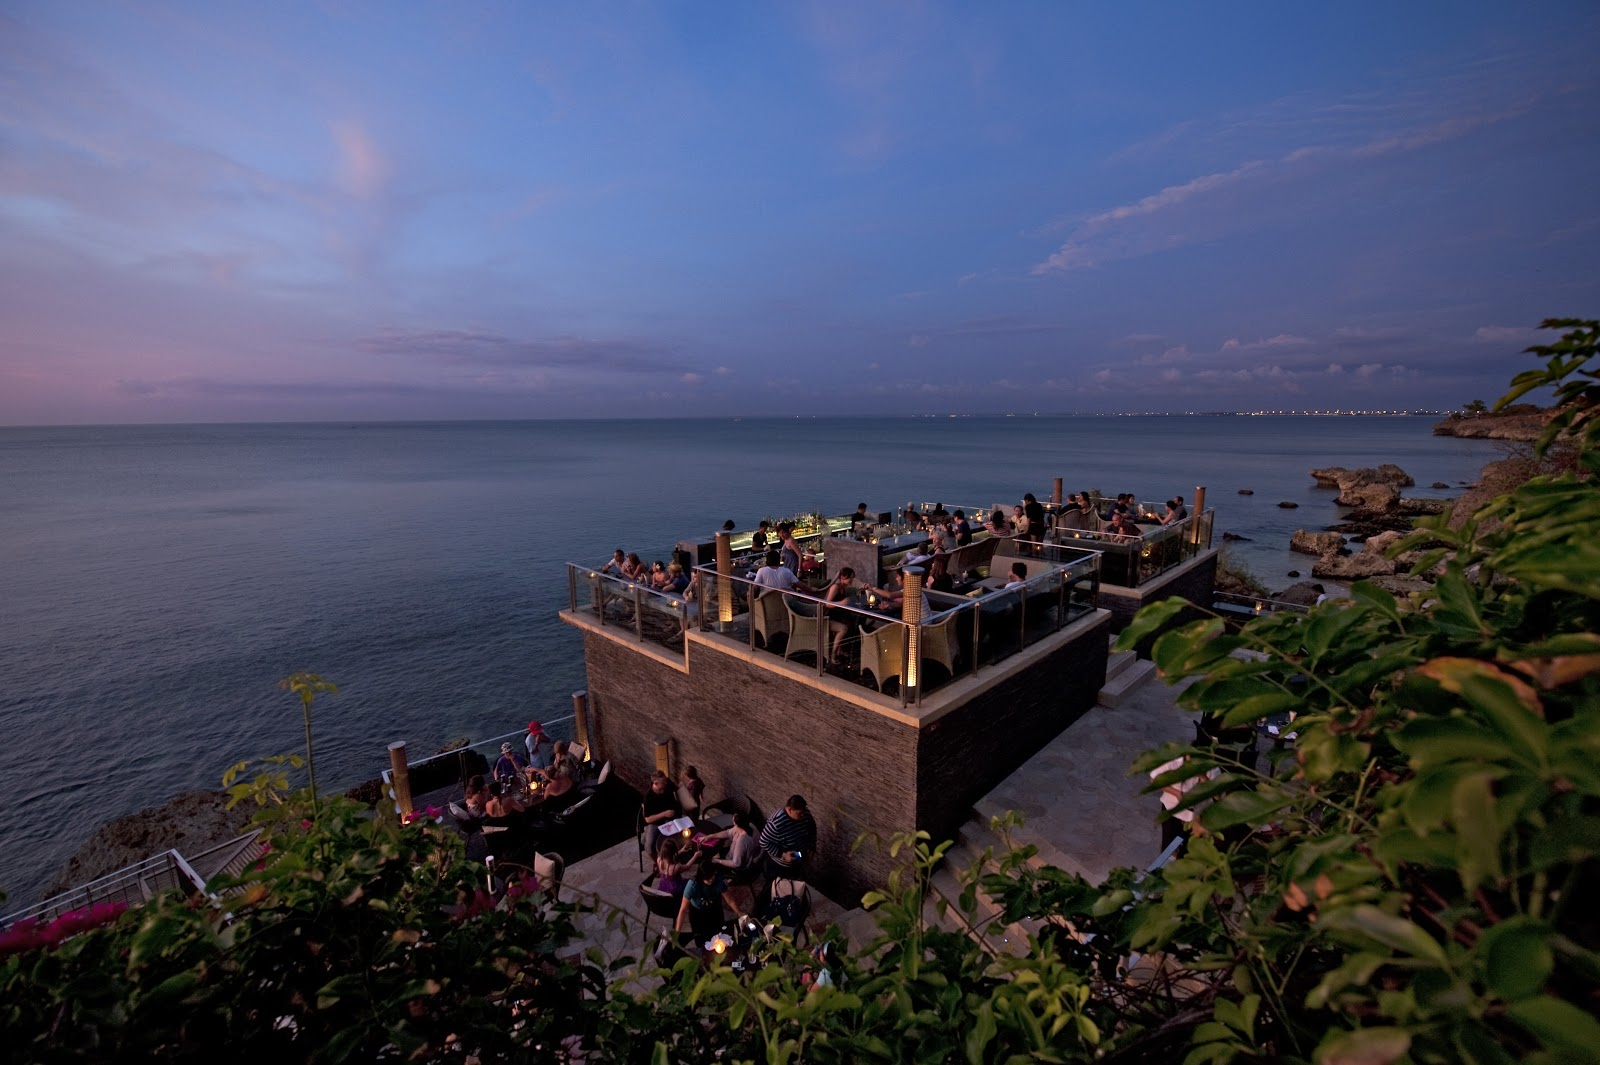 stackliving-beach-bars-rock-bar-bali-indonesia-02